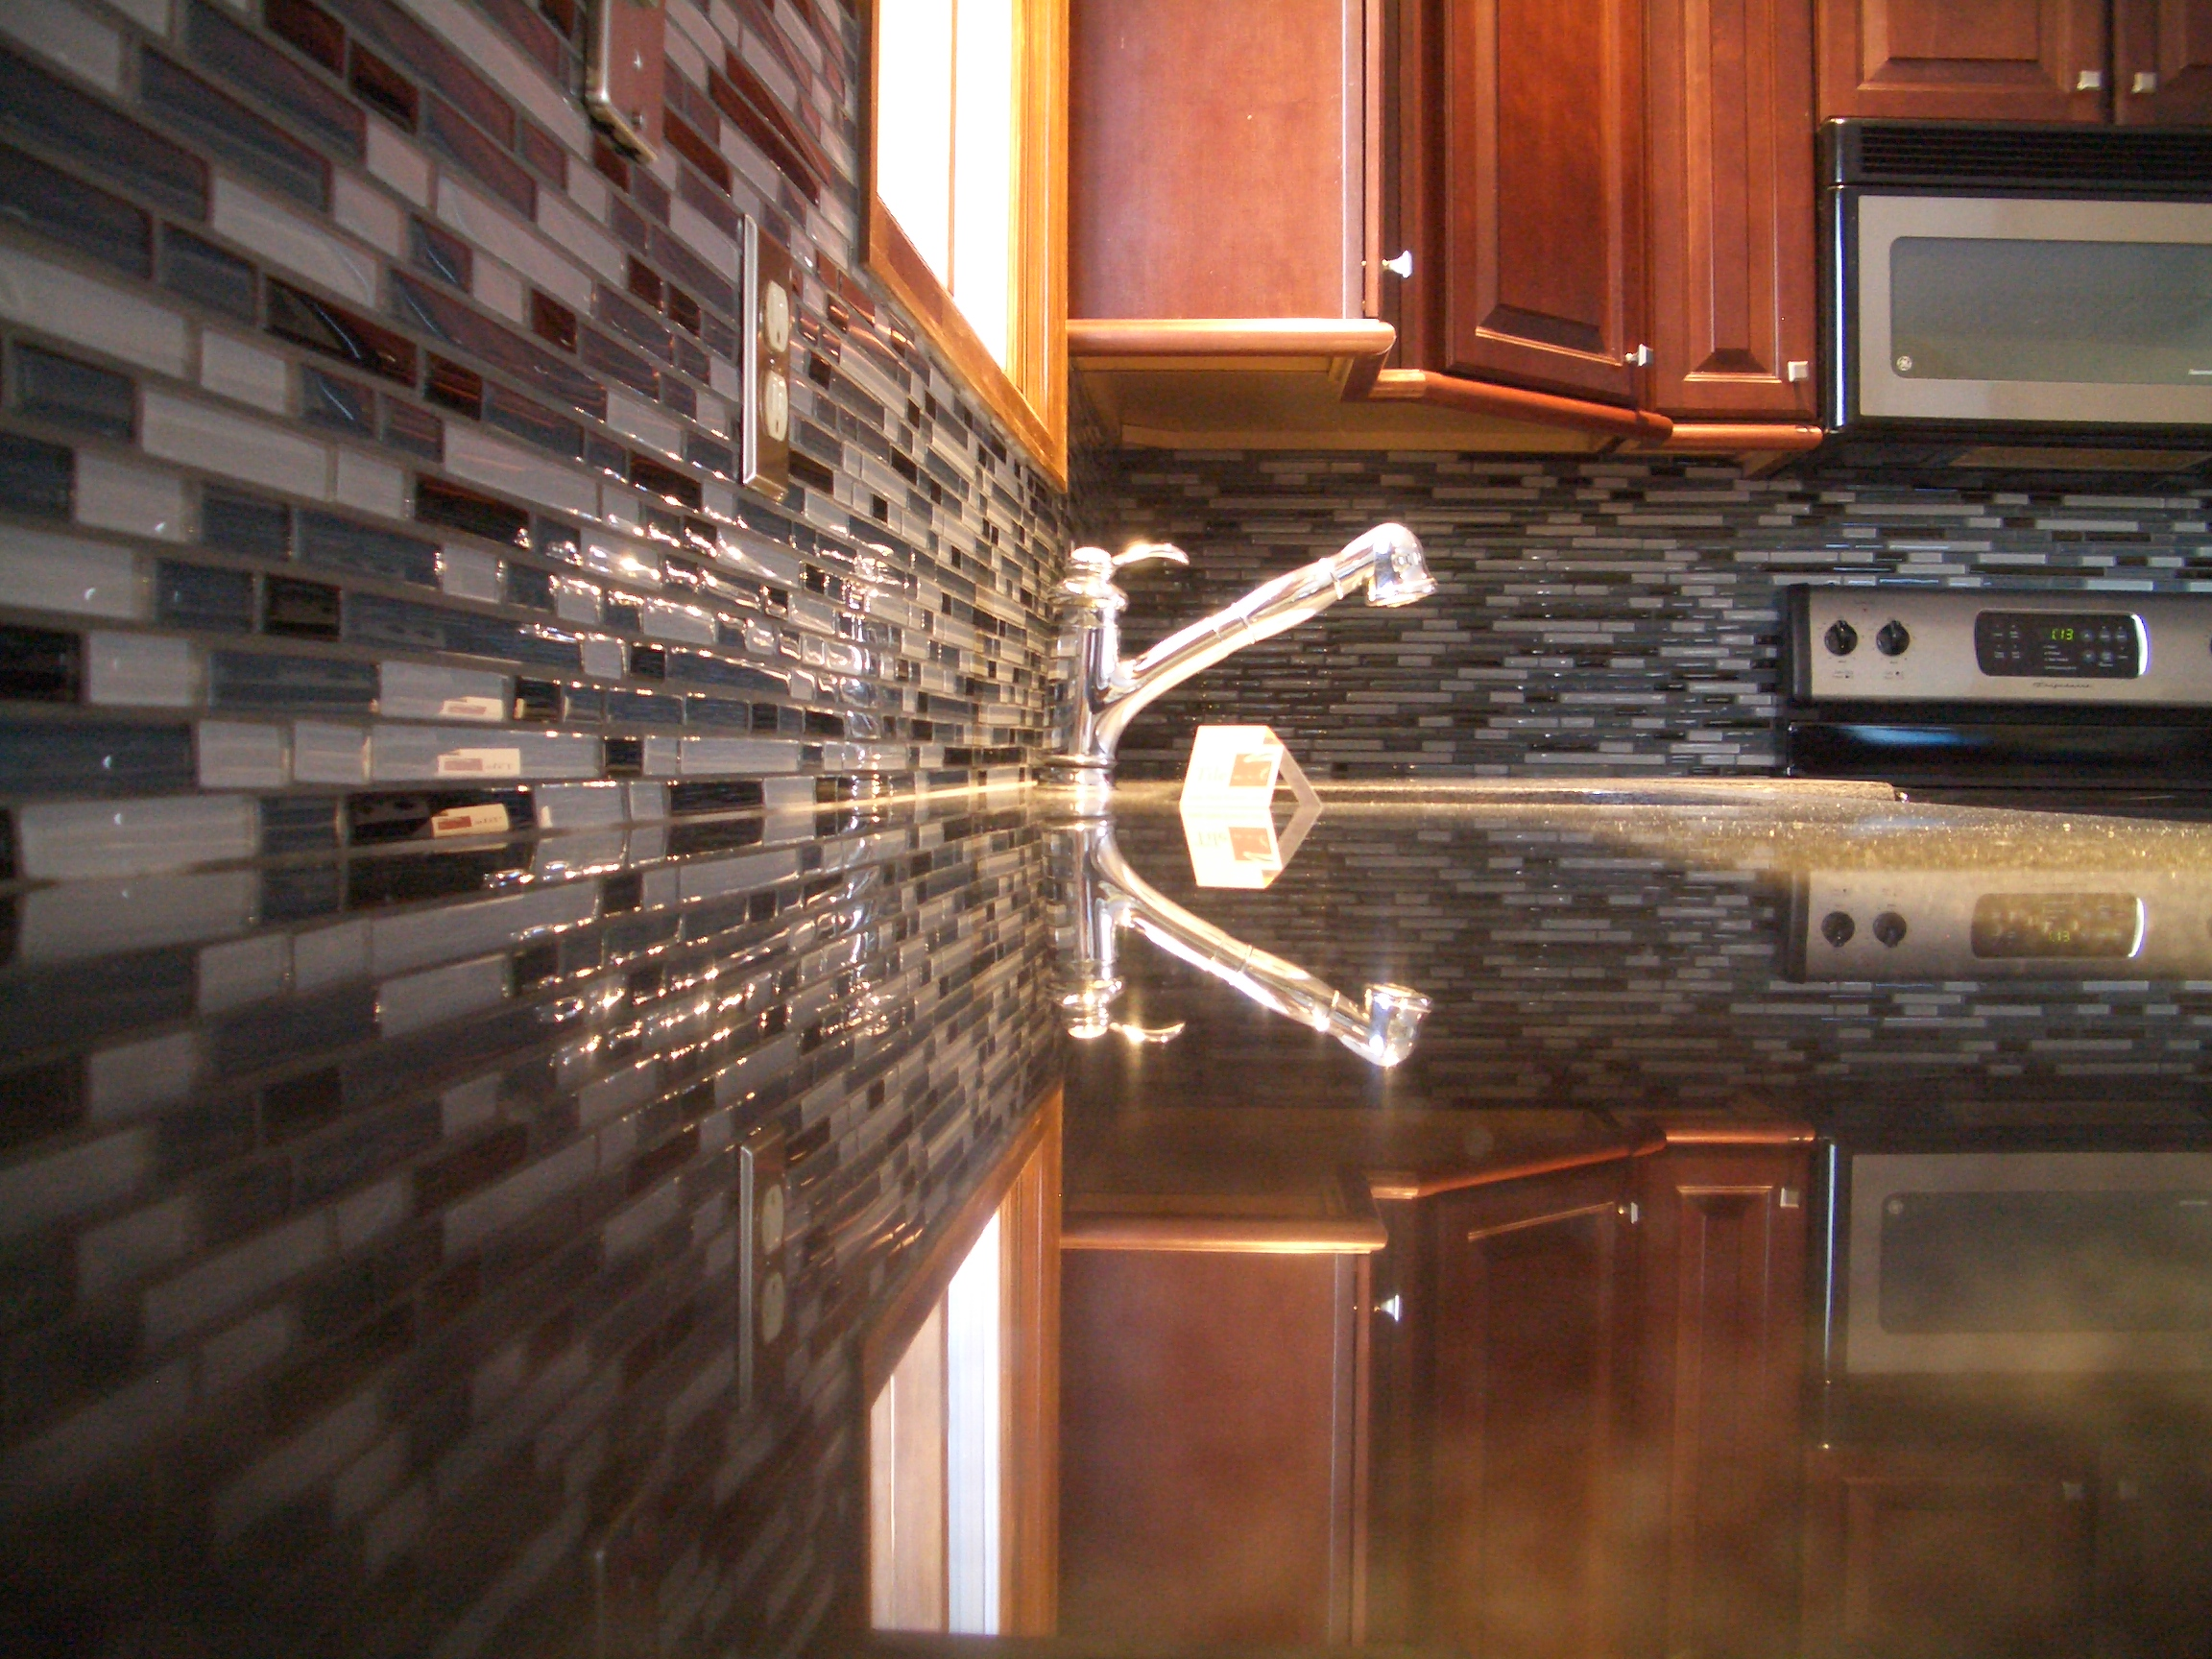 glass tile kitchen backsplash in fort collins kitchen backsplash tiles Glass tile kitchen backsplash in Fort Collins